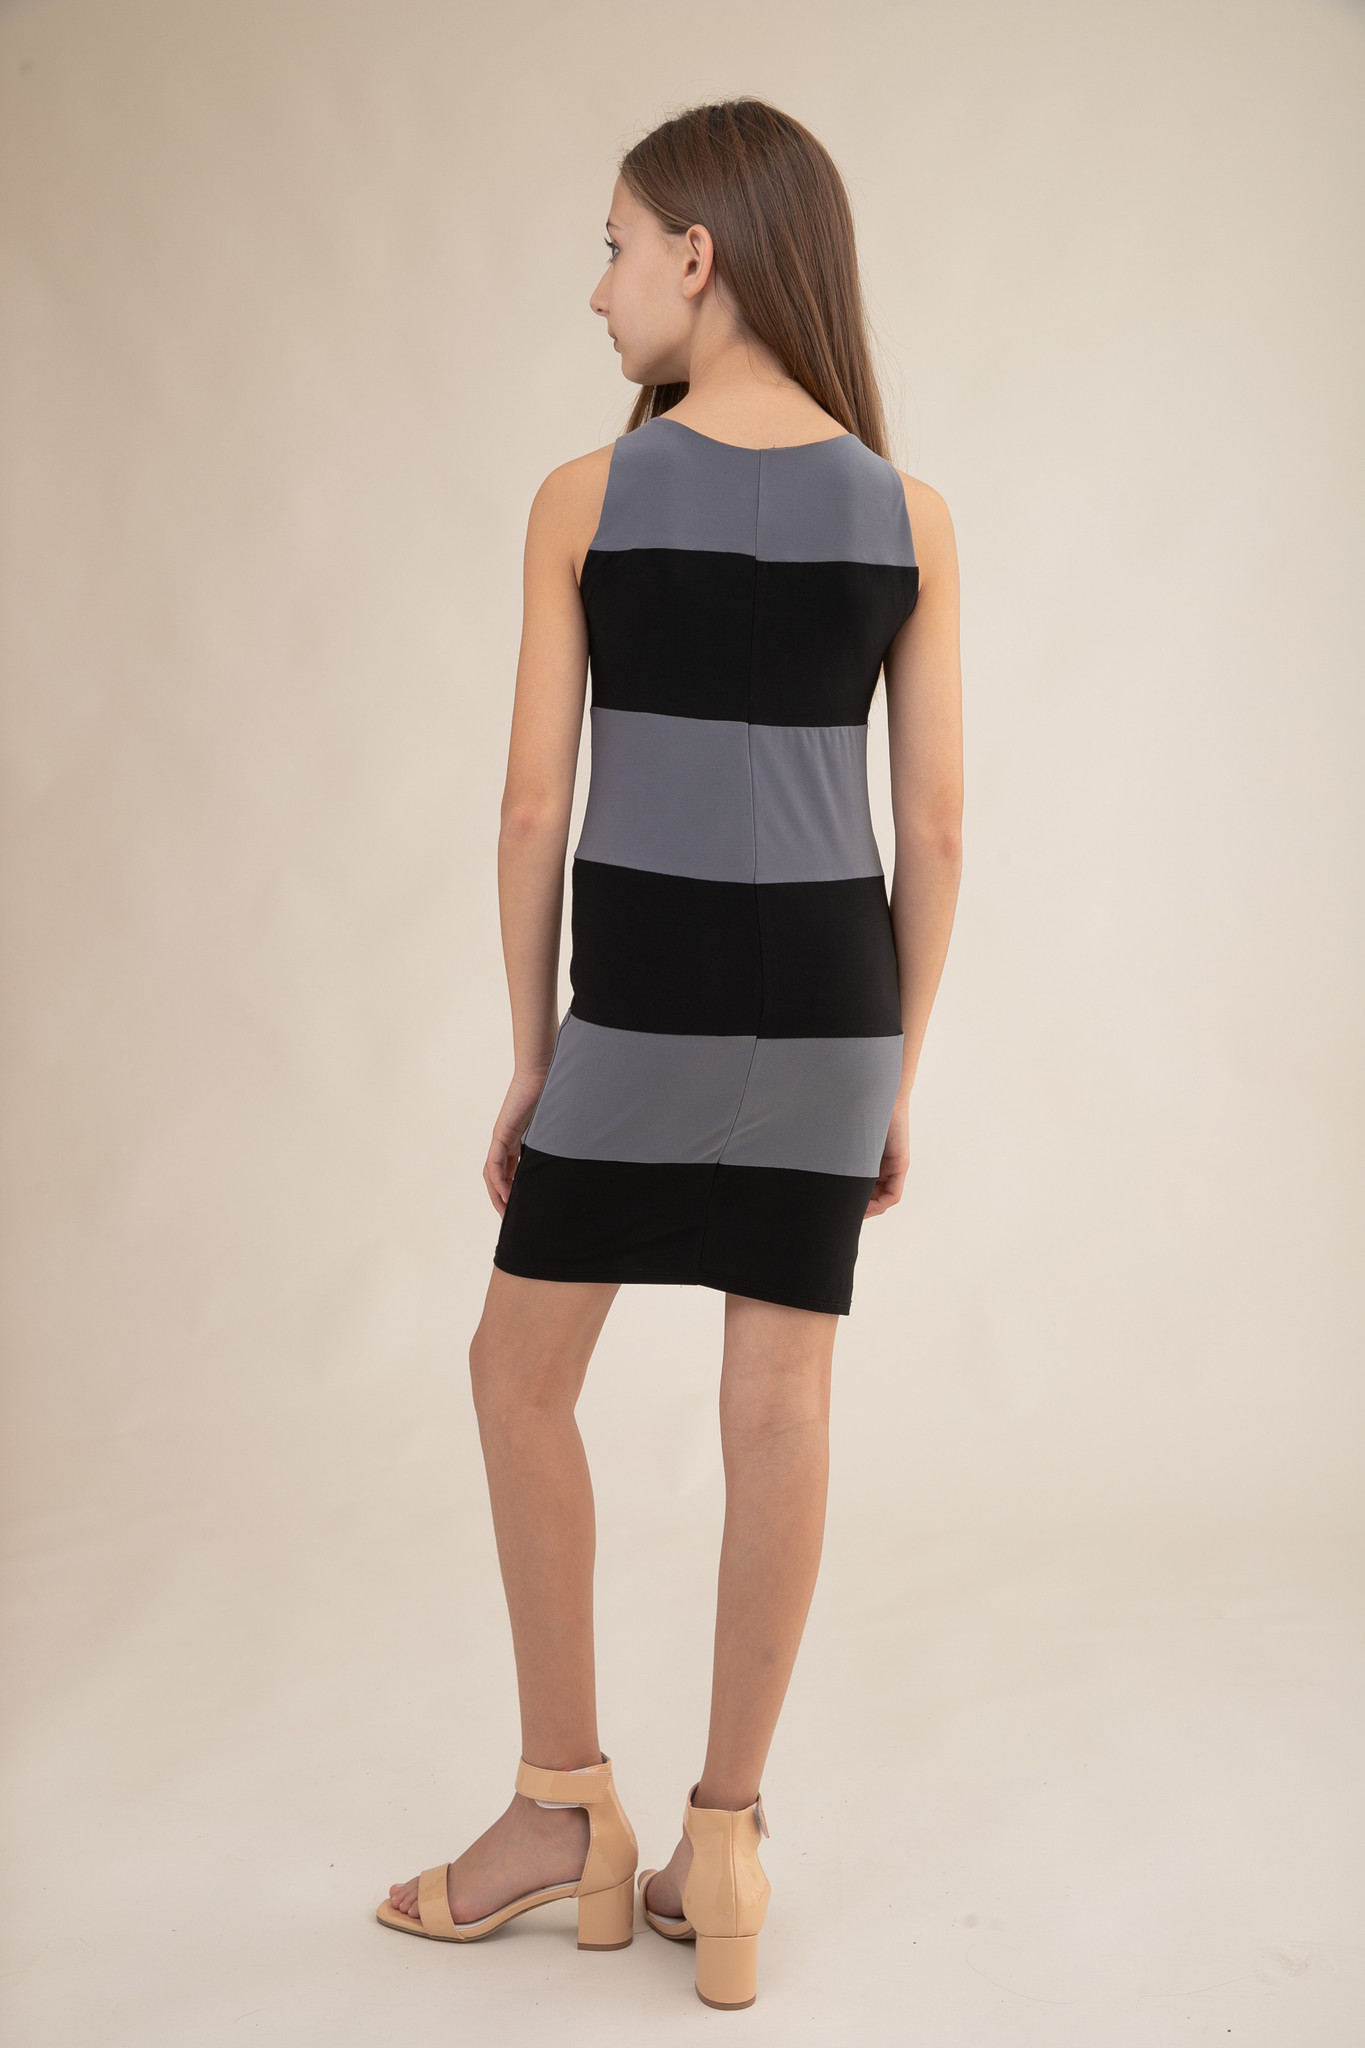 Tween Girls Charcoal and Black Color-Block Fitted Dress back view.